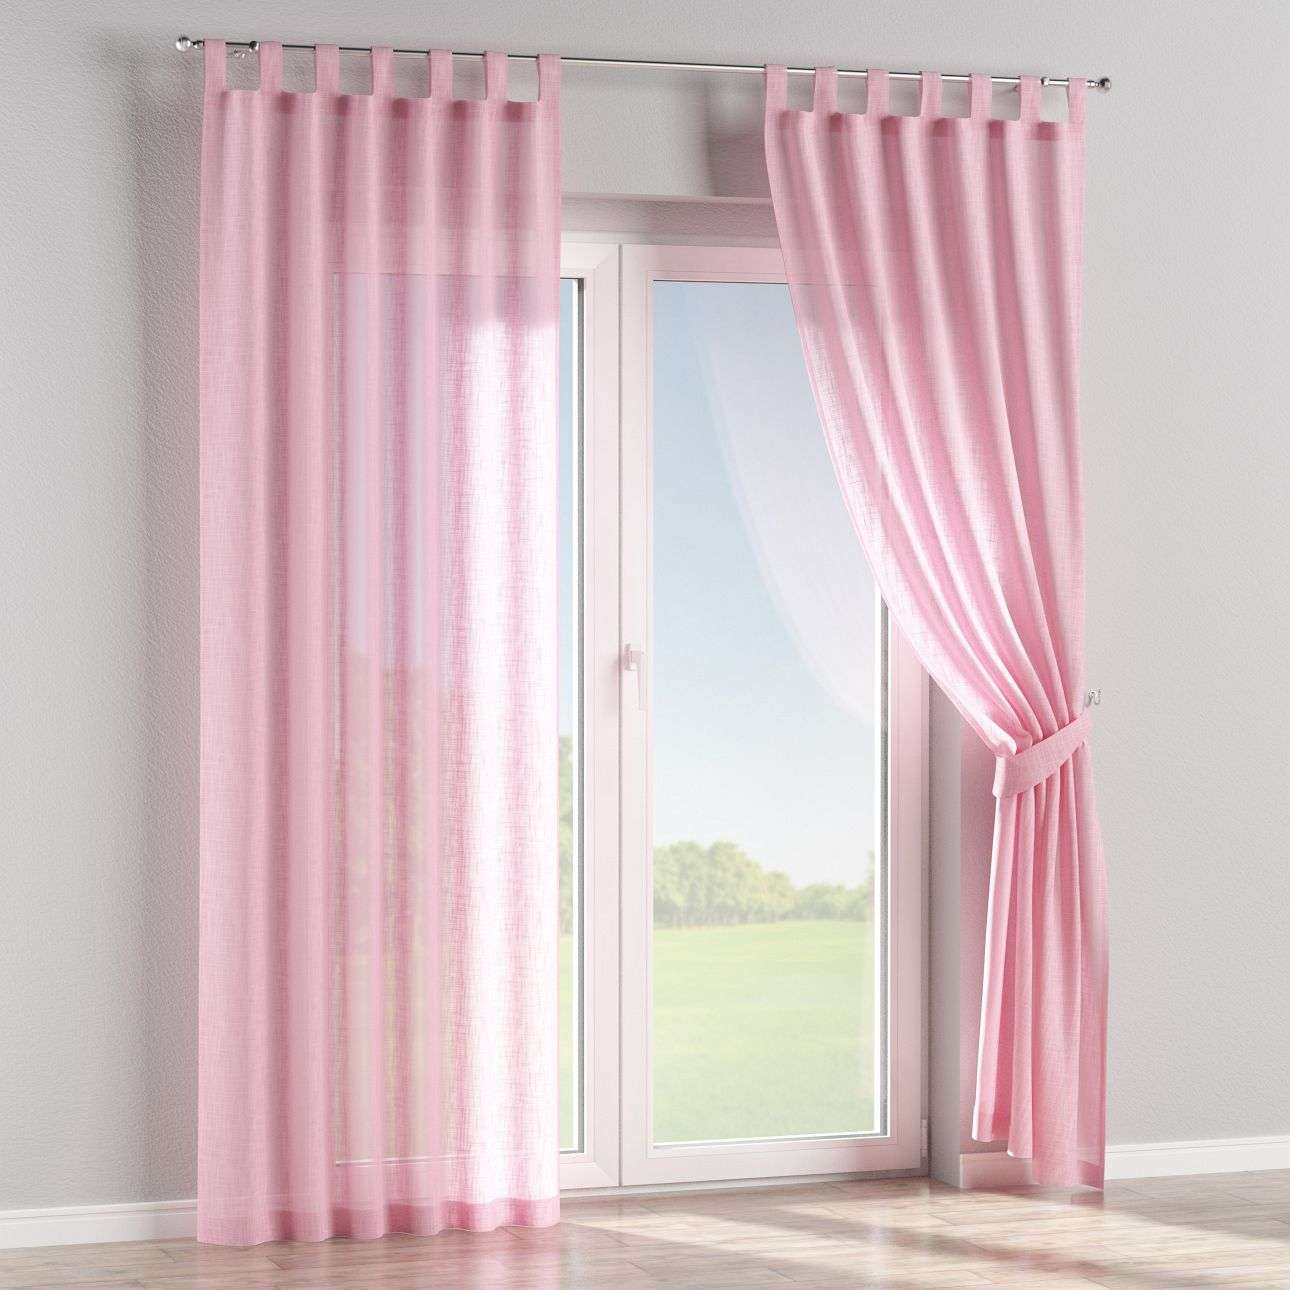 Tab top curtains 130 x 260 cm (51 x 102 inch) in collection Romantica, fabric: 128-03